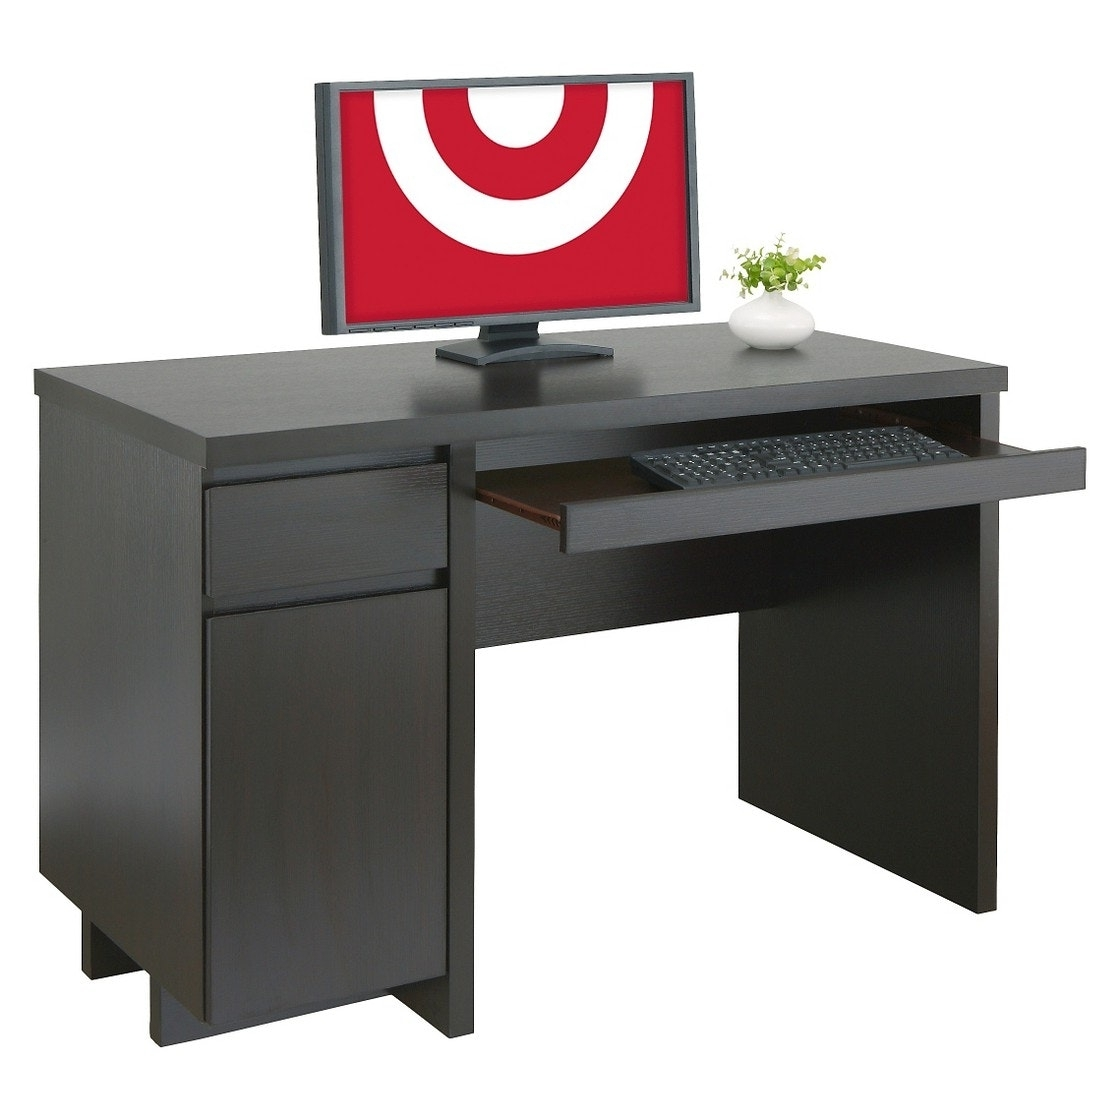 Computer Desks At Target With Regard To Famous Small Computer Desk Target The Best Desks Stories Foa Shocking (View 7 of 20)